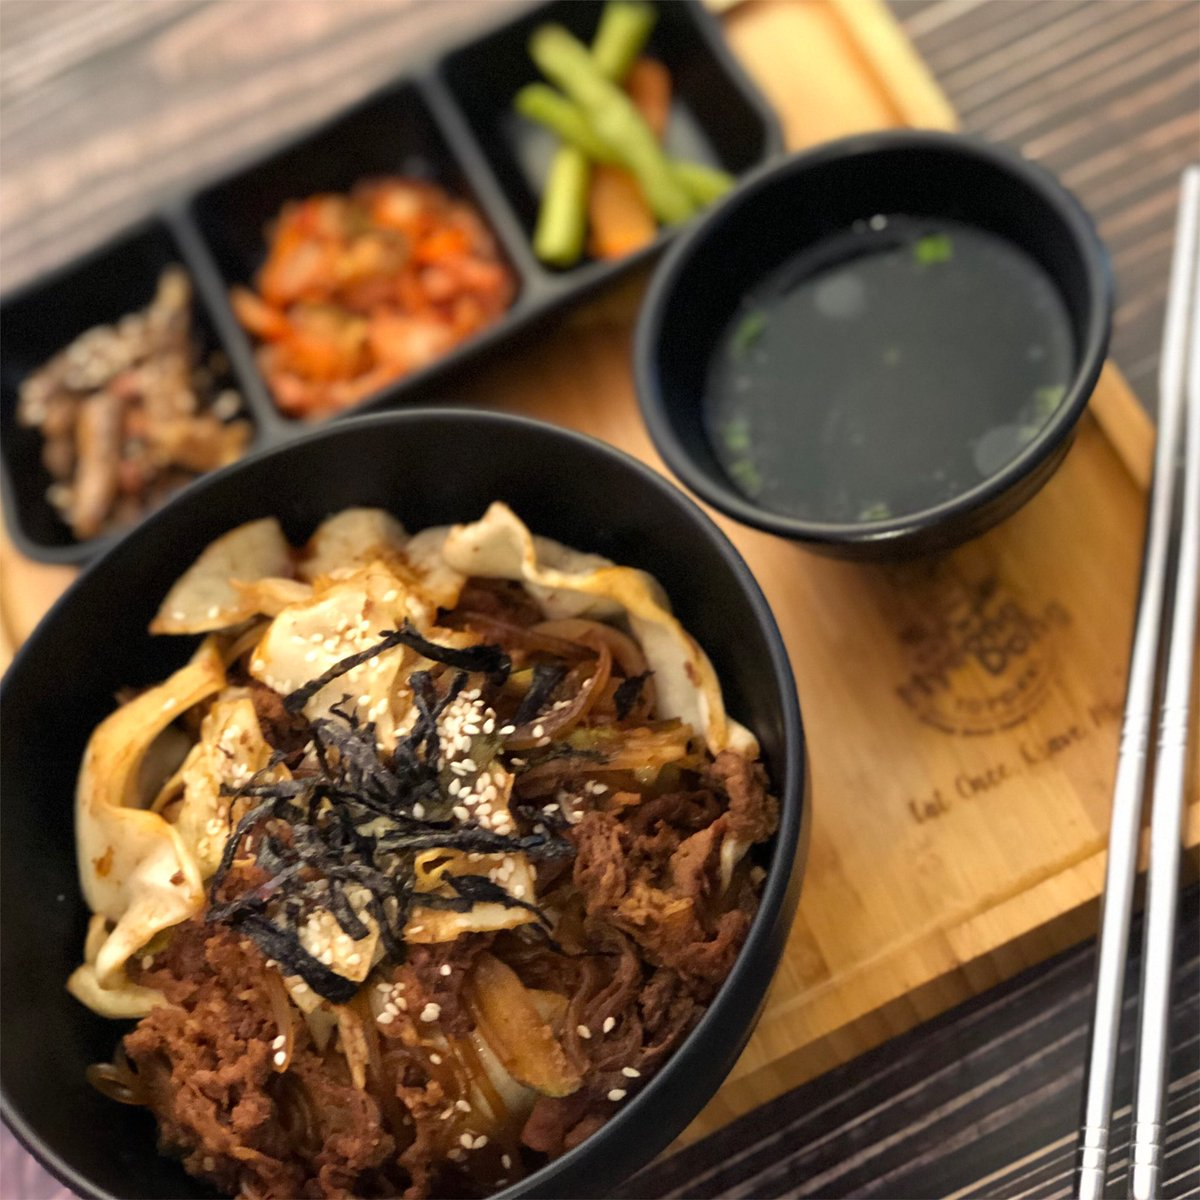 Bulbogi Beef Deopbap 불고기 덮밥 (Stir-Fry Marinated Beef Rice) comment below and let us know your favourite in our store! . #myeongdongtopokkipic.twitter.com/HdY6MMGIvA